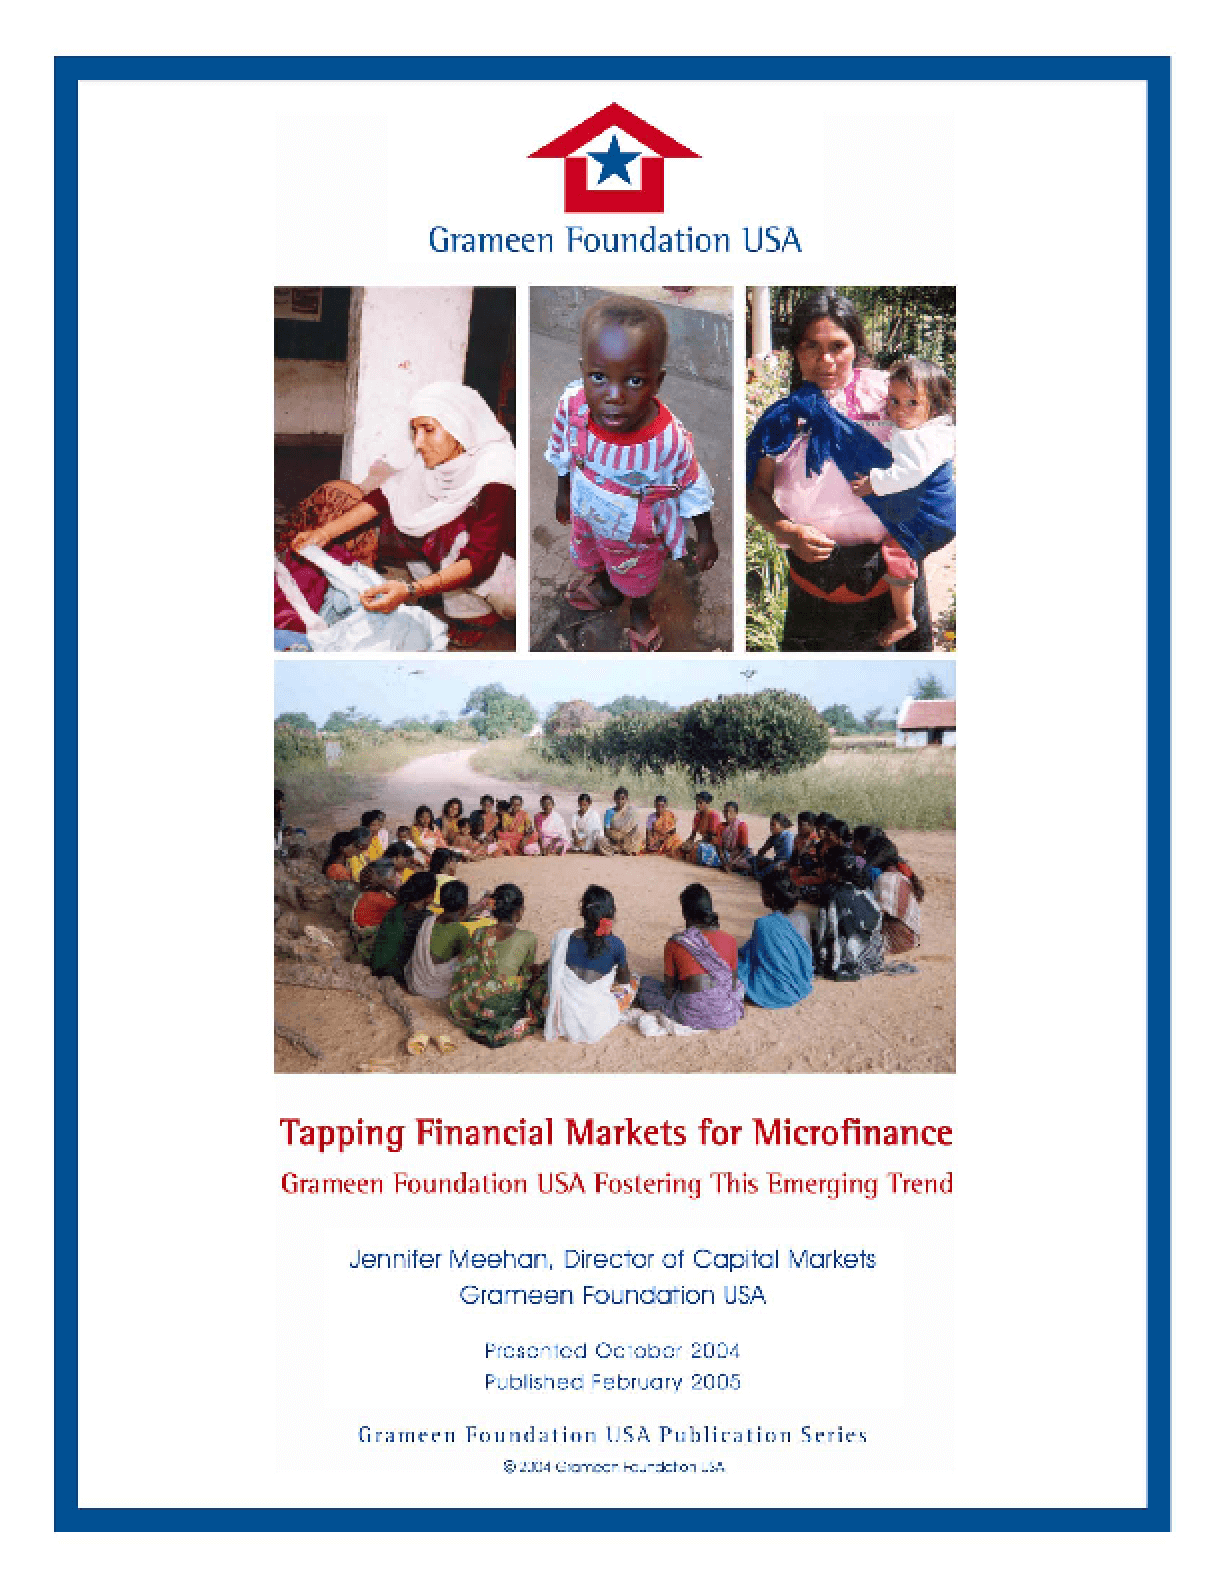 Tapping the Financial Markets For Microfinance: Grameen Foundation USA's Promotion of This Emerging Trend